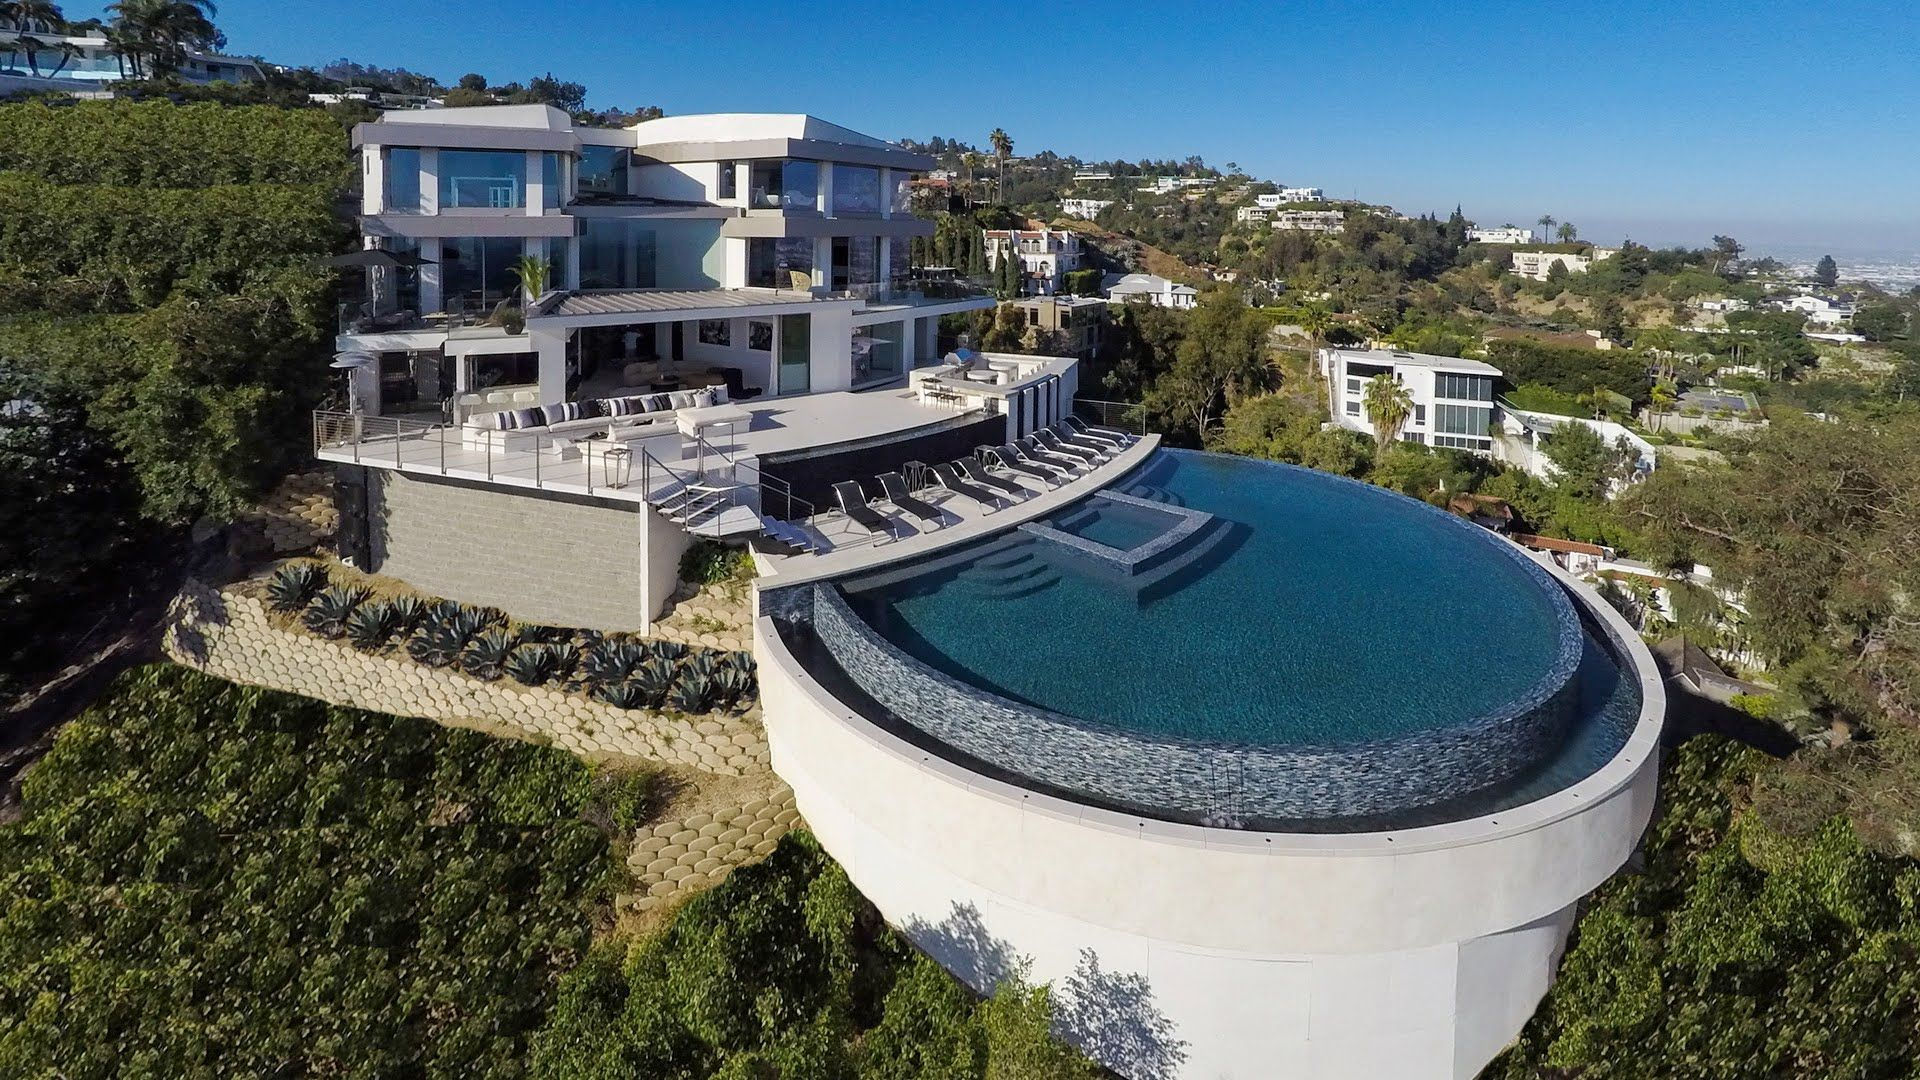 Futuristic Homes For Sale 5 Amazing Luxury Hilltop Houses That Will Blow Your Mind 1